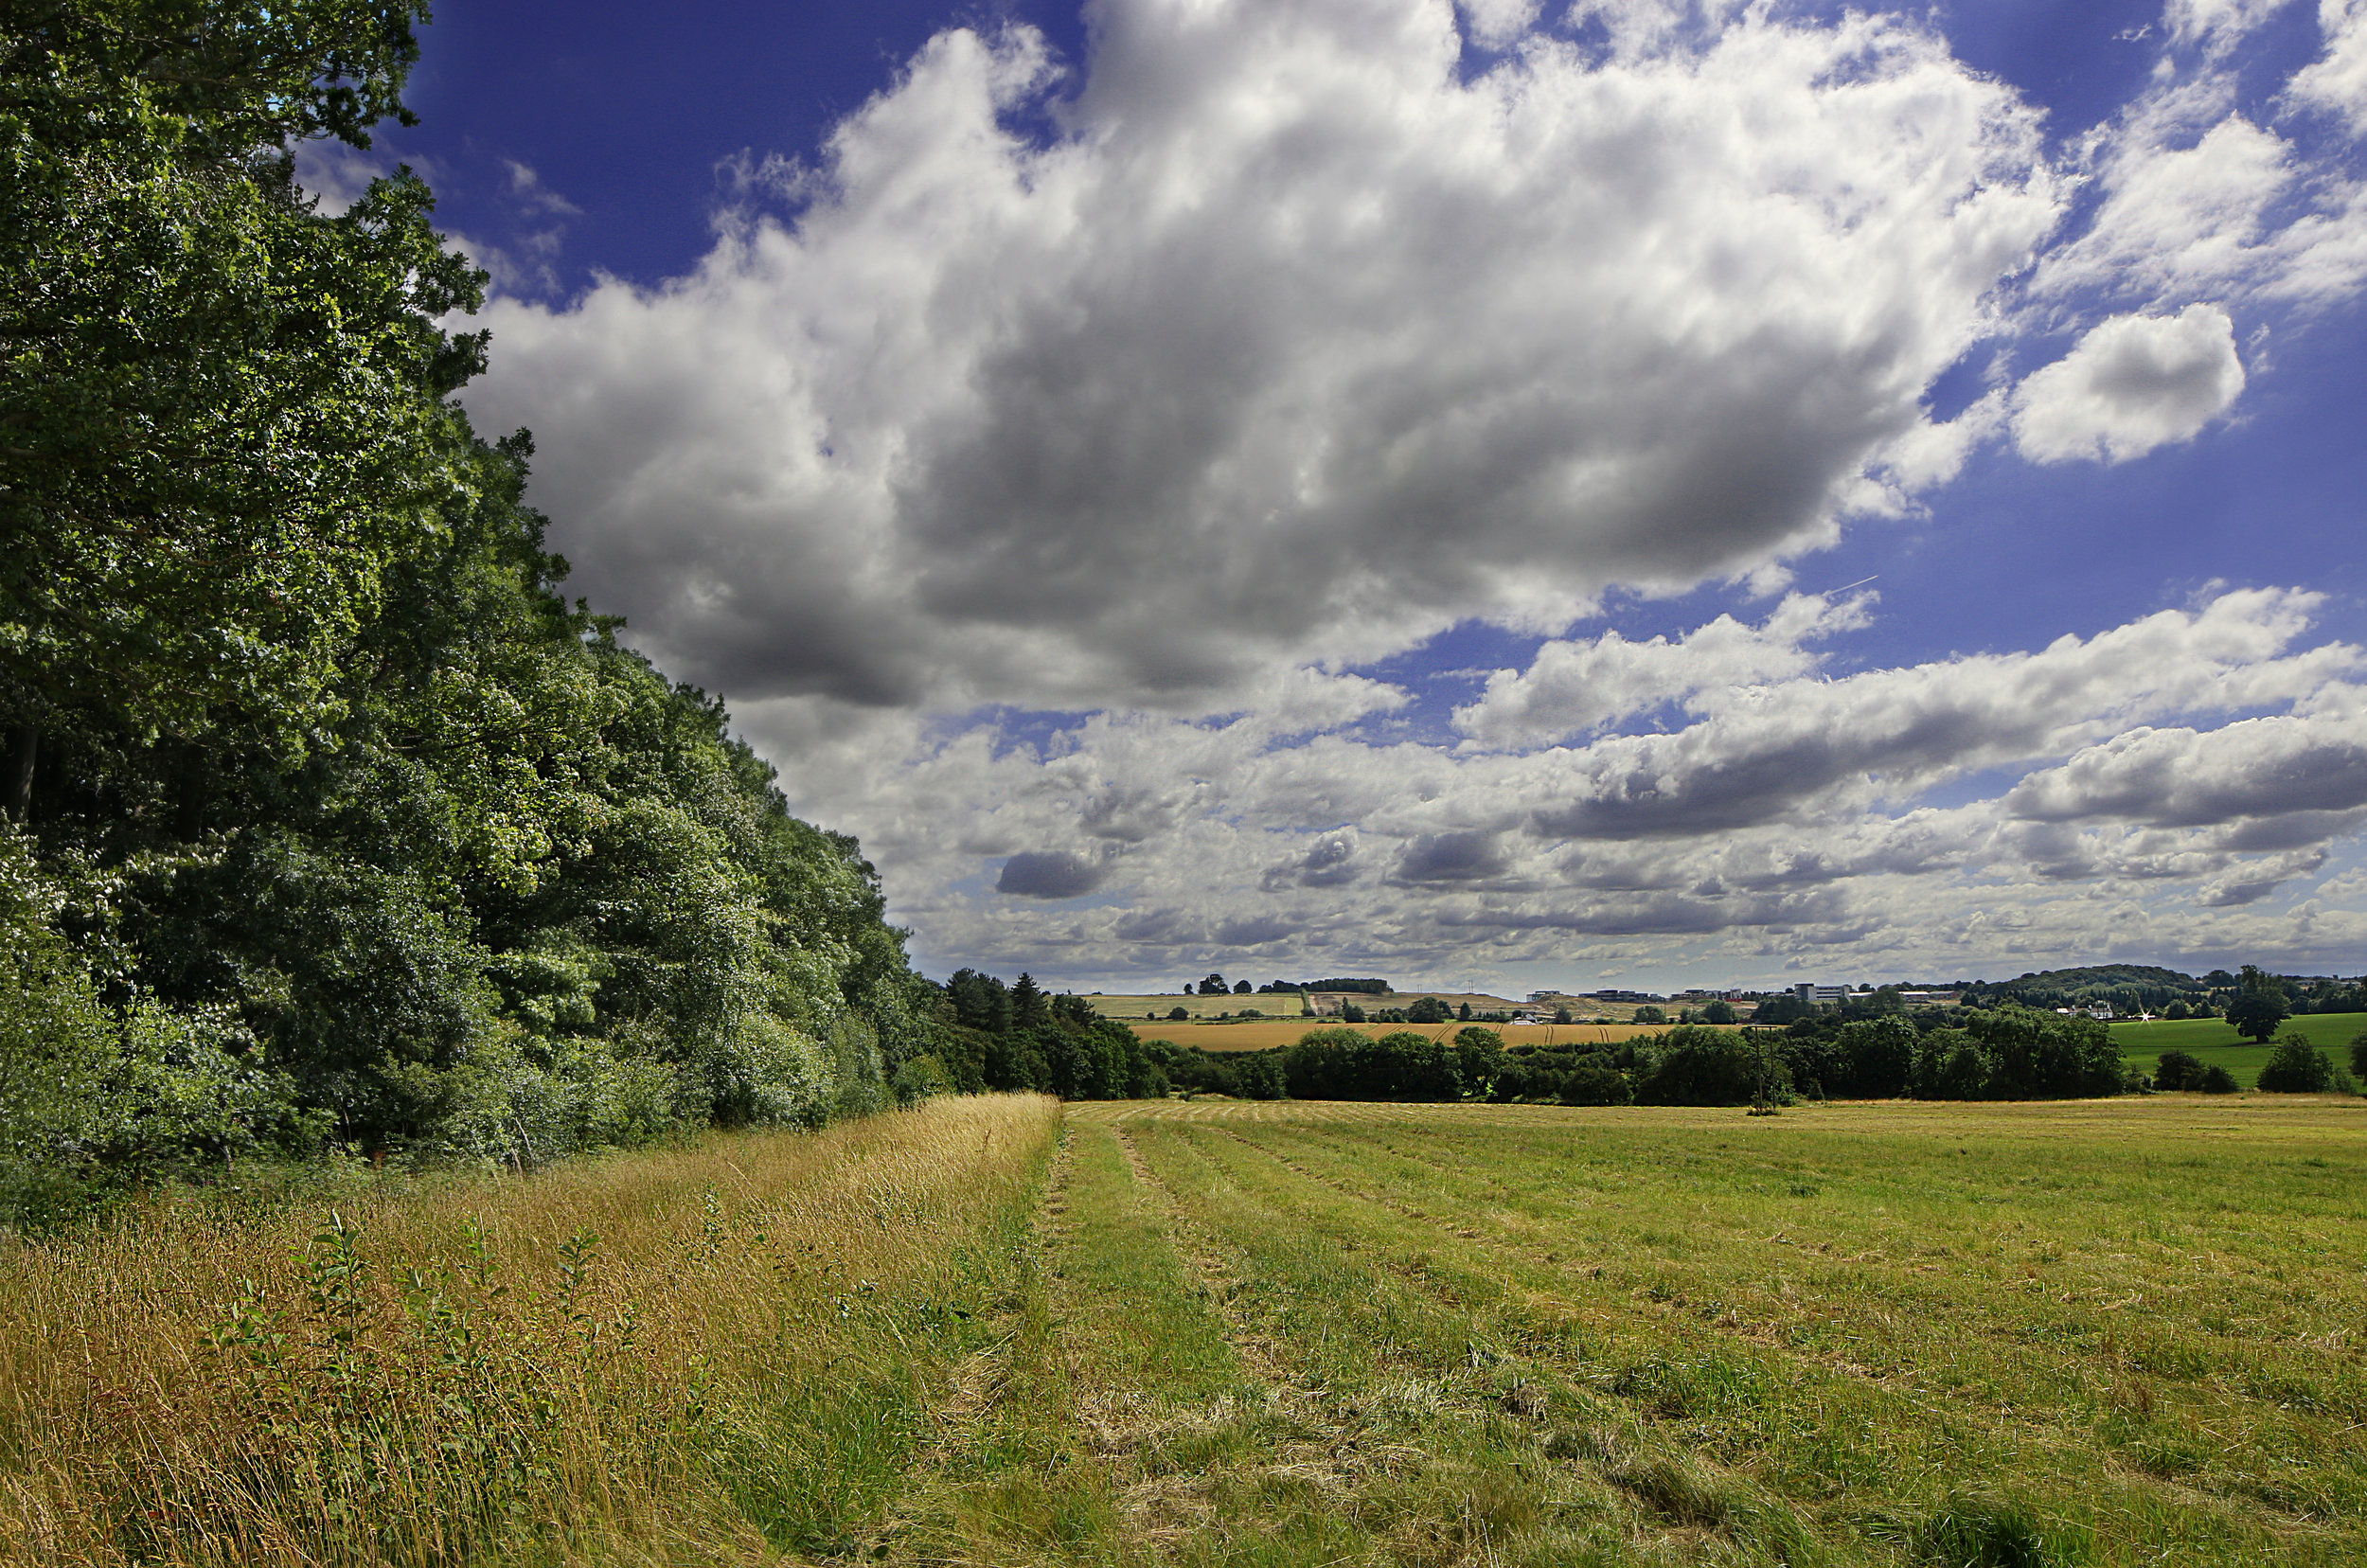 Leeds East, part of Leeds Country Way. Canon 70D, Samyang 14mm lens, three photos combined so that I could balance the exposure of the sky and the landscape